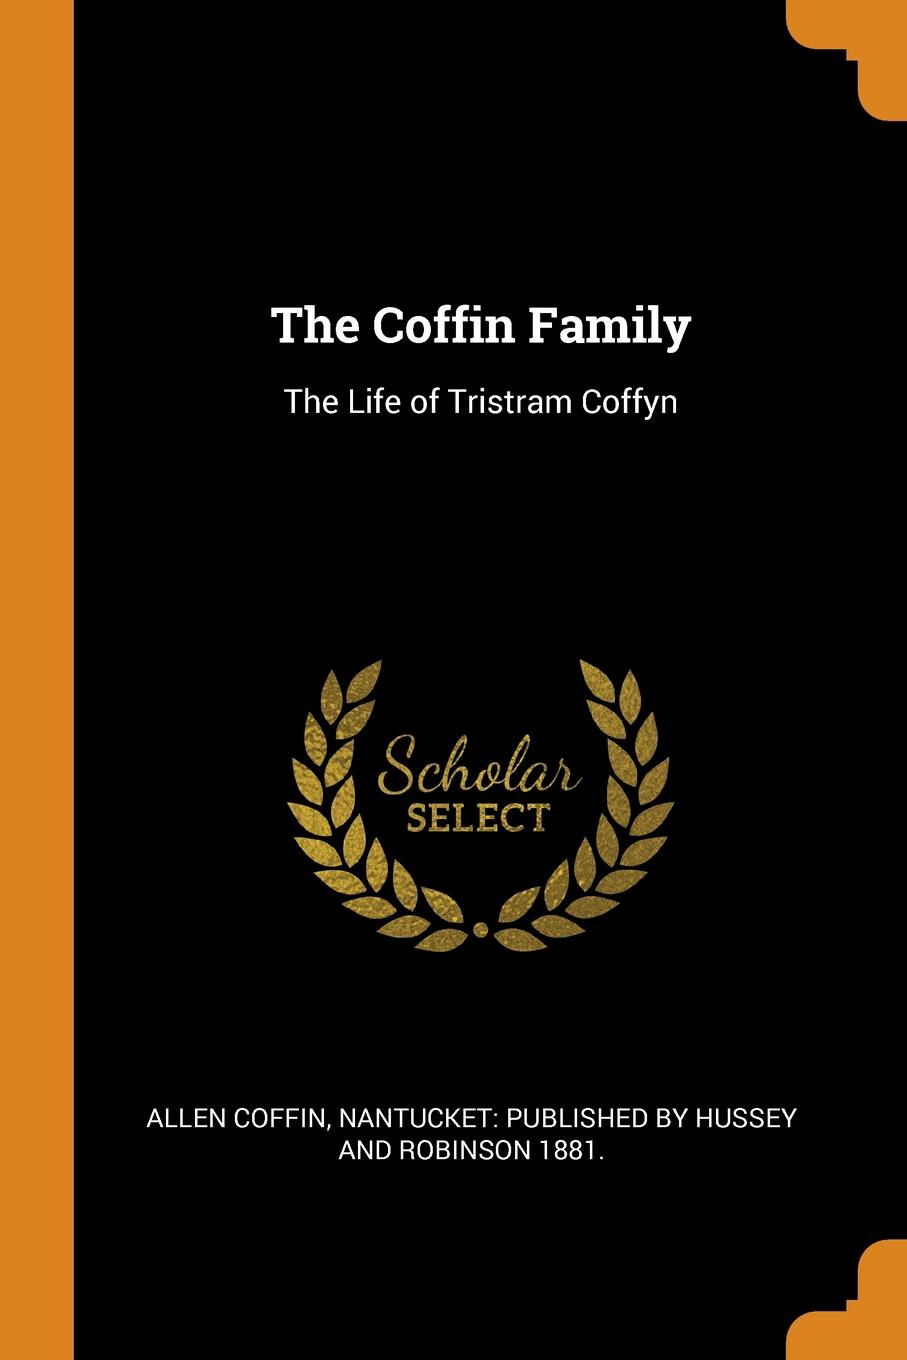 Allen Coffin The Coffin Family. The Life of Tristram Coffyn